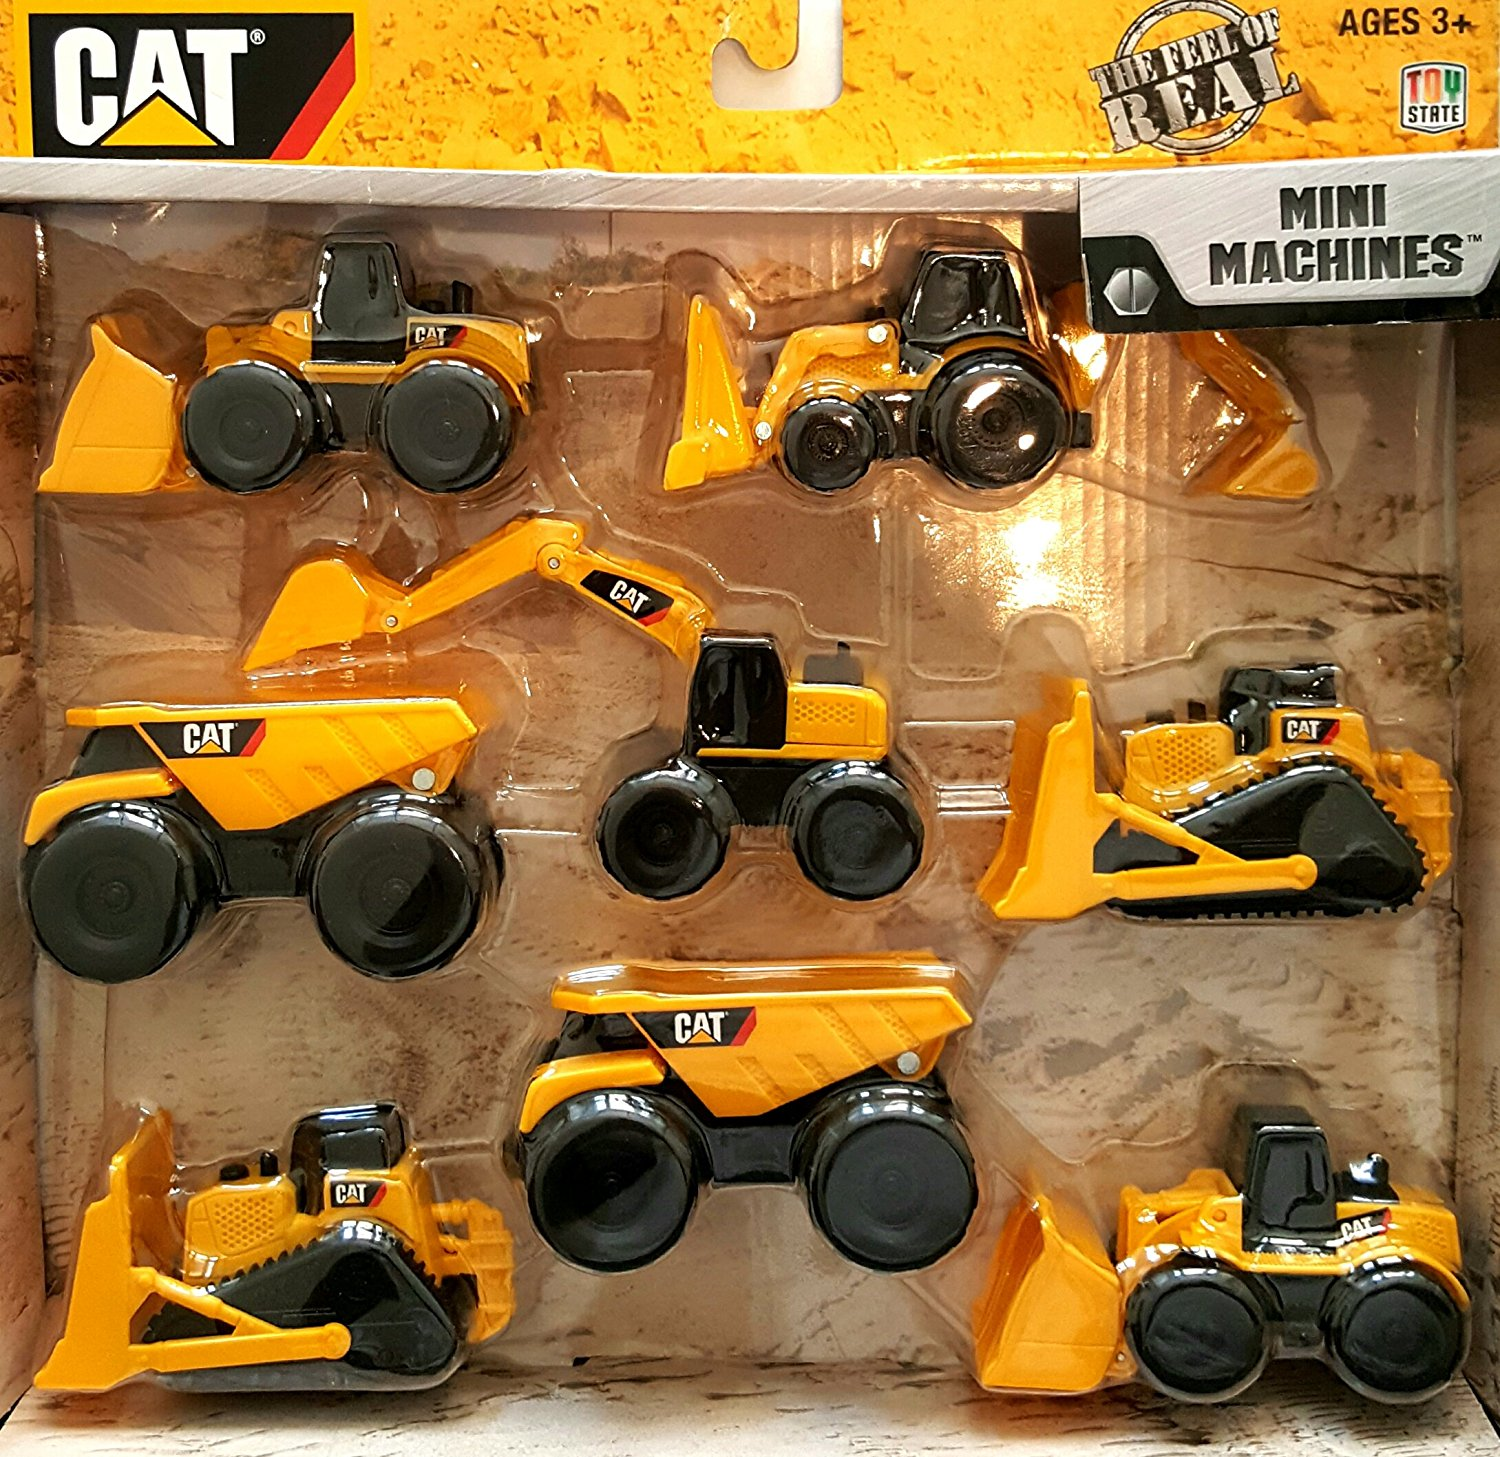 CAT Construction Mini Machine 8-Pack, 1 Excavator, 2 Bulldozers, 2 Wheel Loaders, 1 Backhoe and 2 Dump Trucks By Caterpillar Ship from US